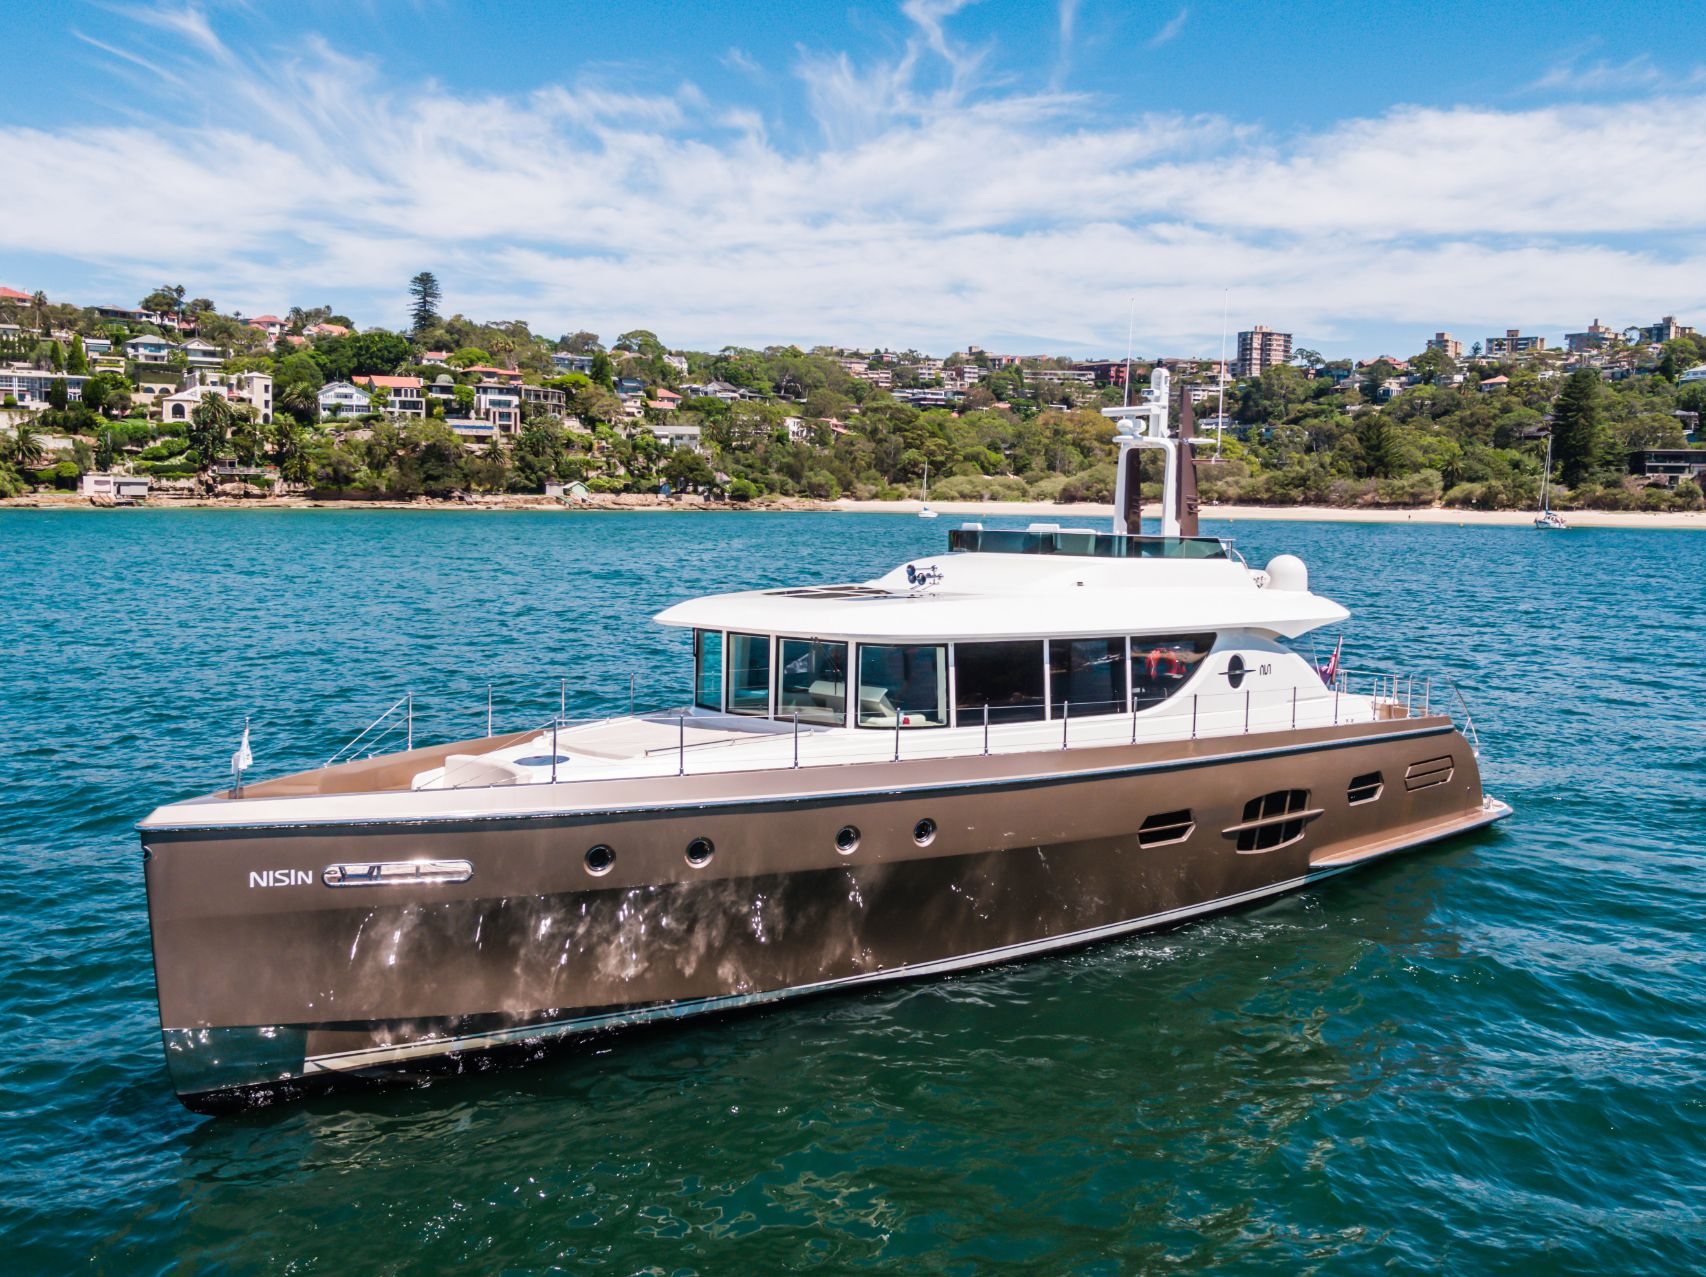 Nisi - Affordable superyacht luxury on Sydney Harbour.